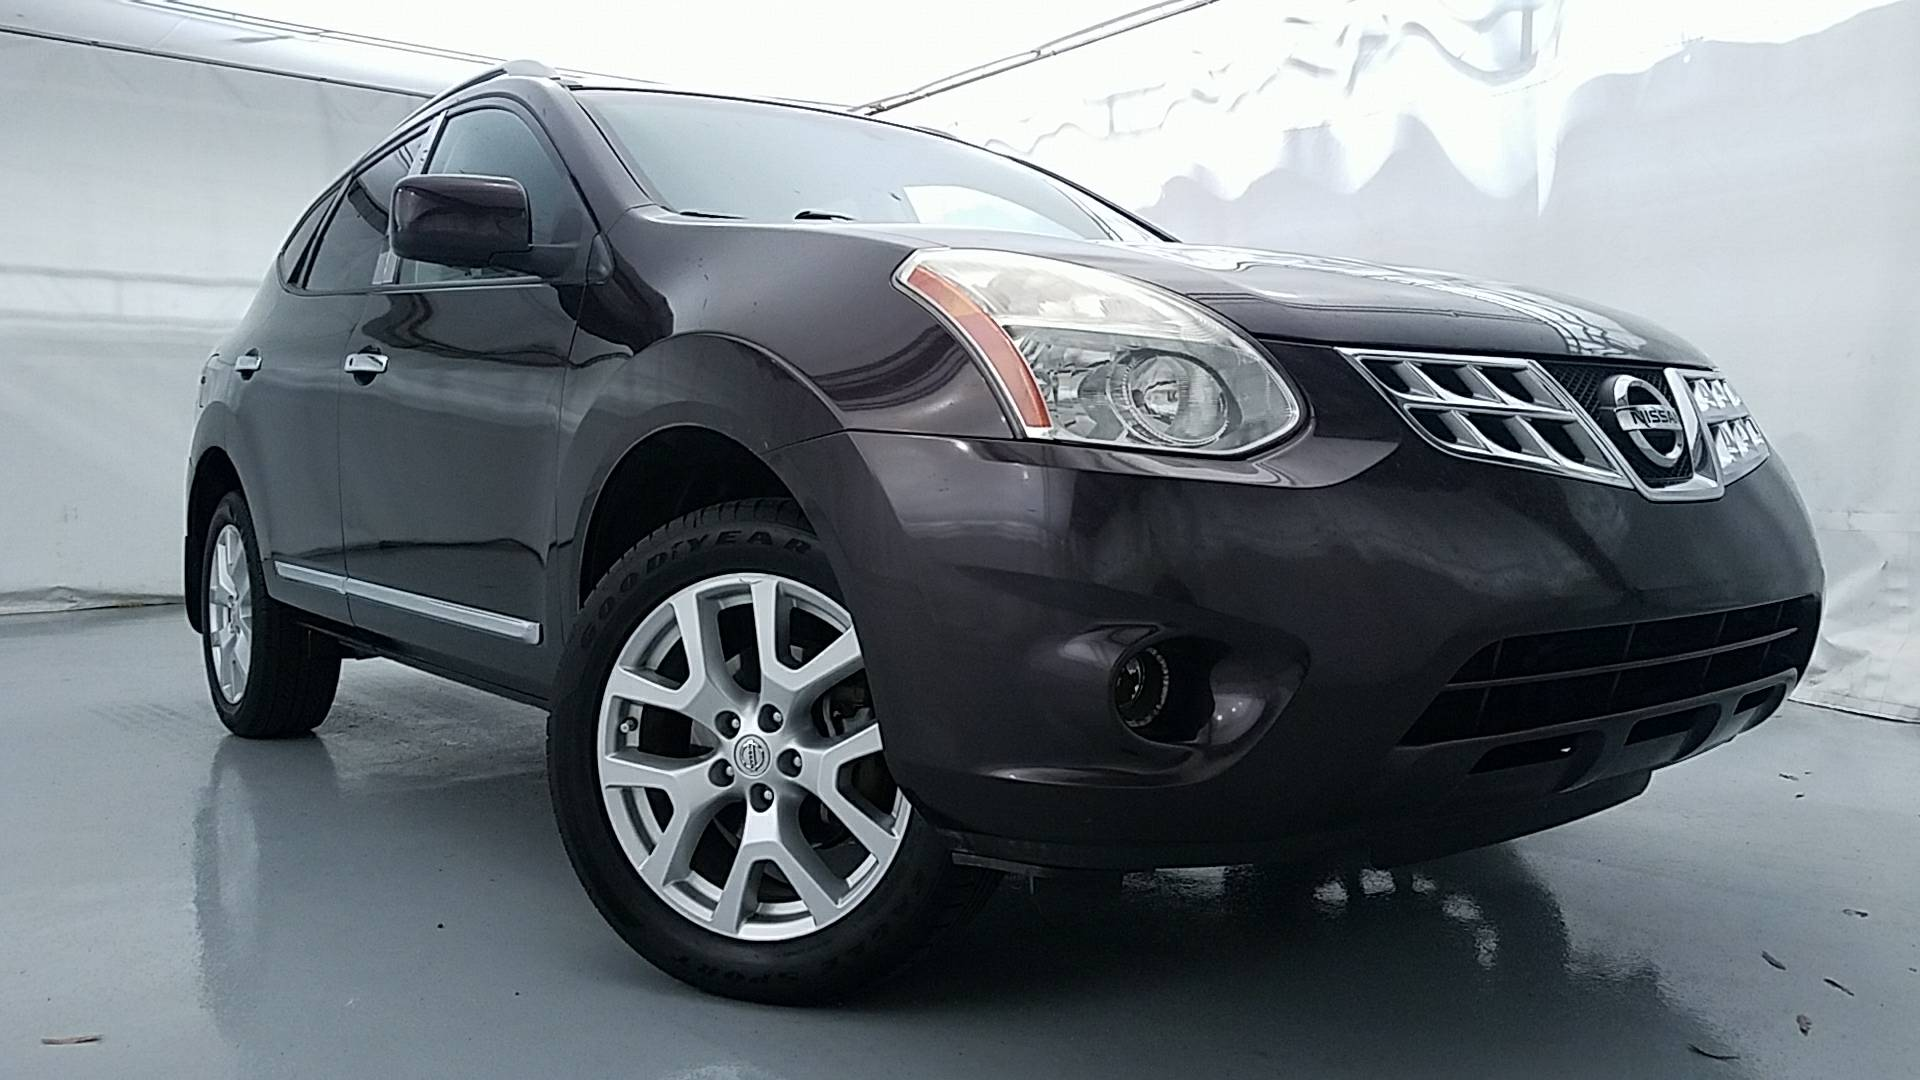 view sale in versa la red on carfinder orleans auctions of auto en title nissan online new lot salvage copart cert s left